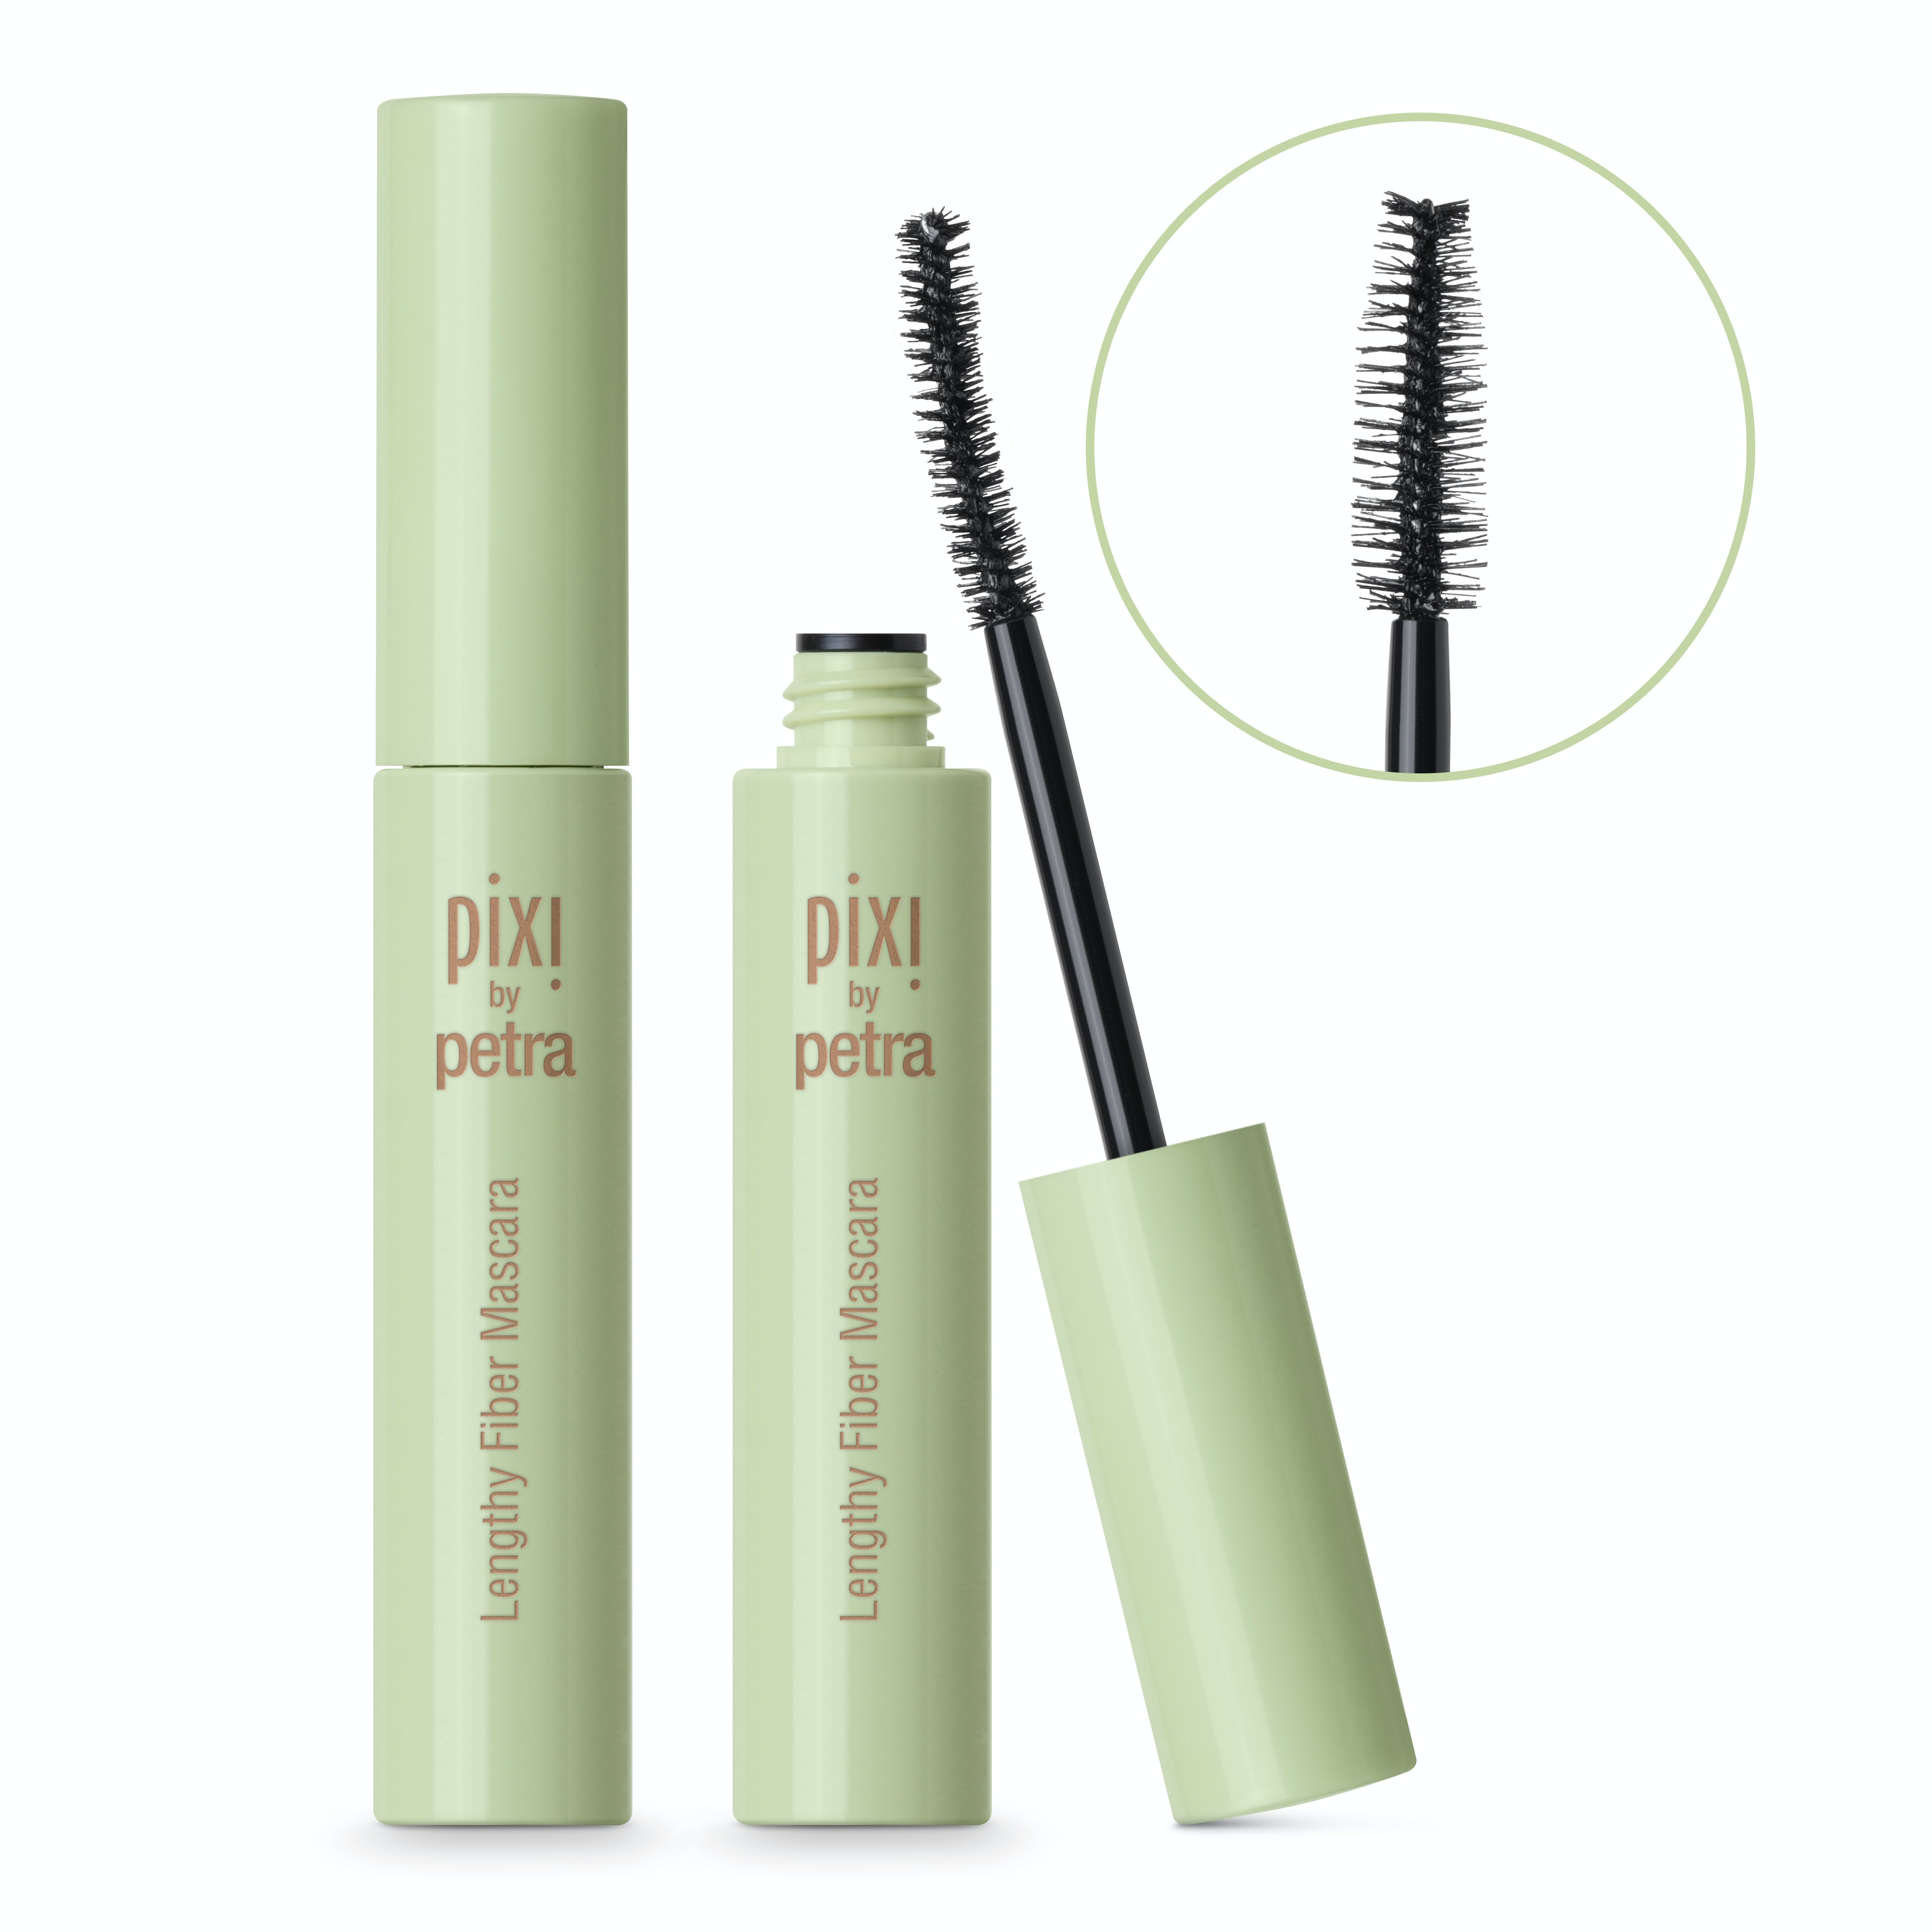 Whats In The Pixi By Petra Skintreats Line These Products Will Pixy Shadow Eyeliner Green Leave You Glowing Photos